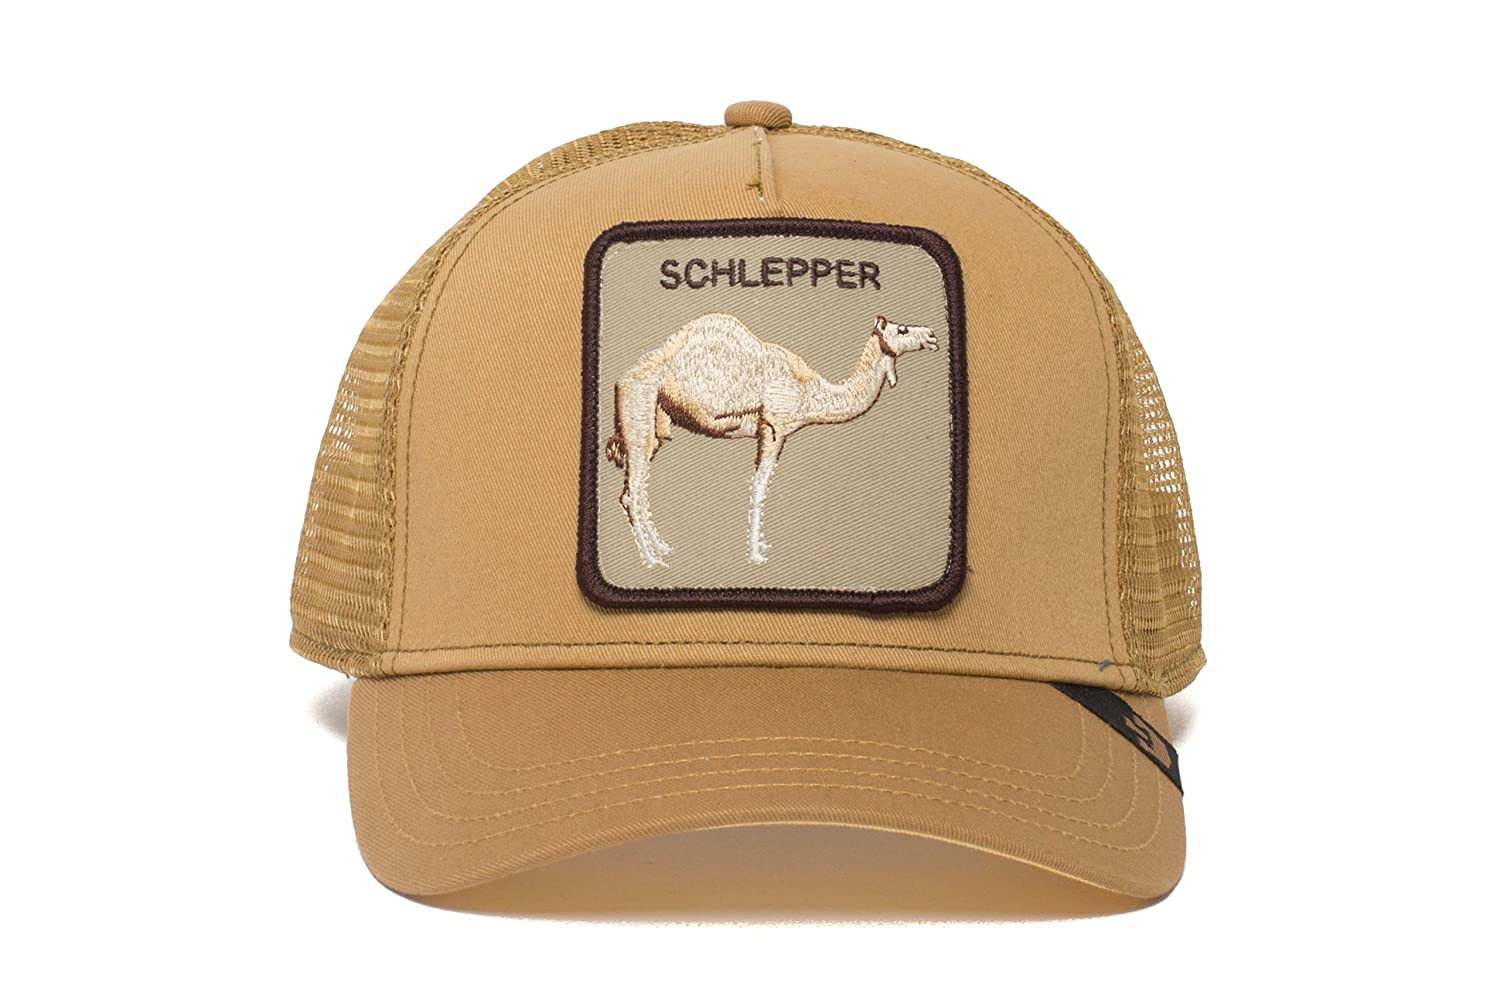 210b90ae8c7 Goorin Bros. Animal Farm Snapback Trucker Hat  Amazon.co.uk  Shoes   Bags